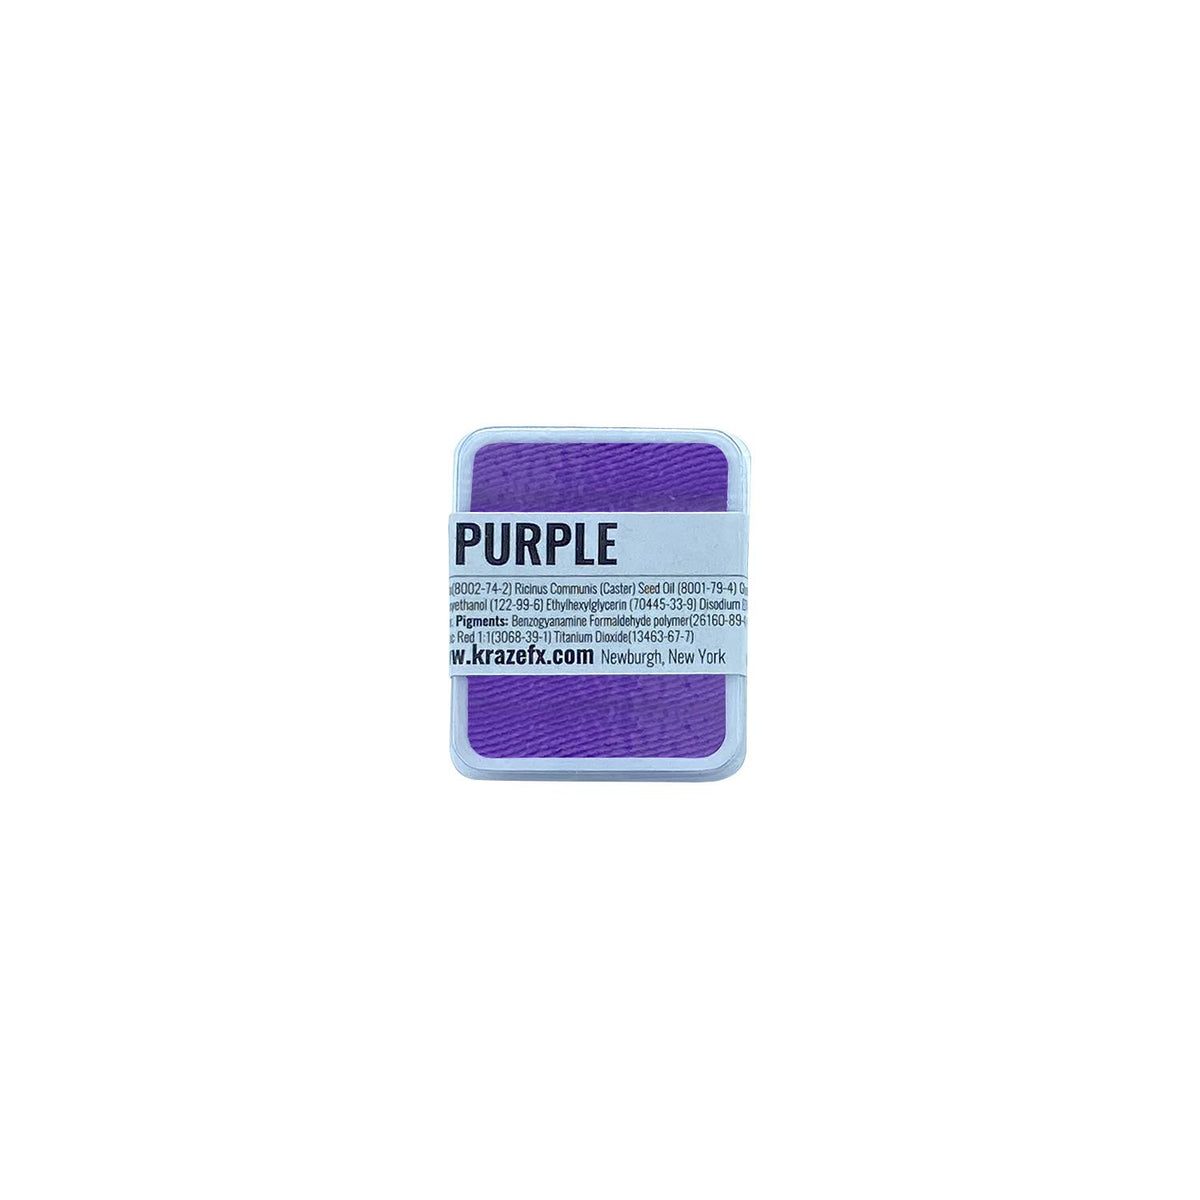 Kraze FX Face Paint Palette Refill - Neon Purple (0.21 oz/6 gm)